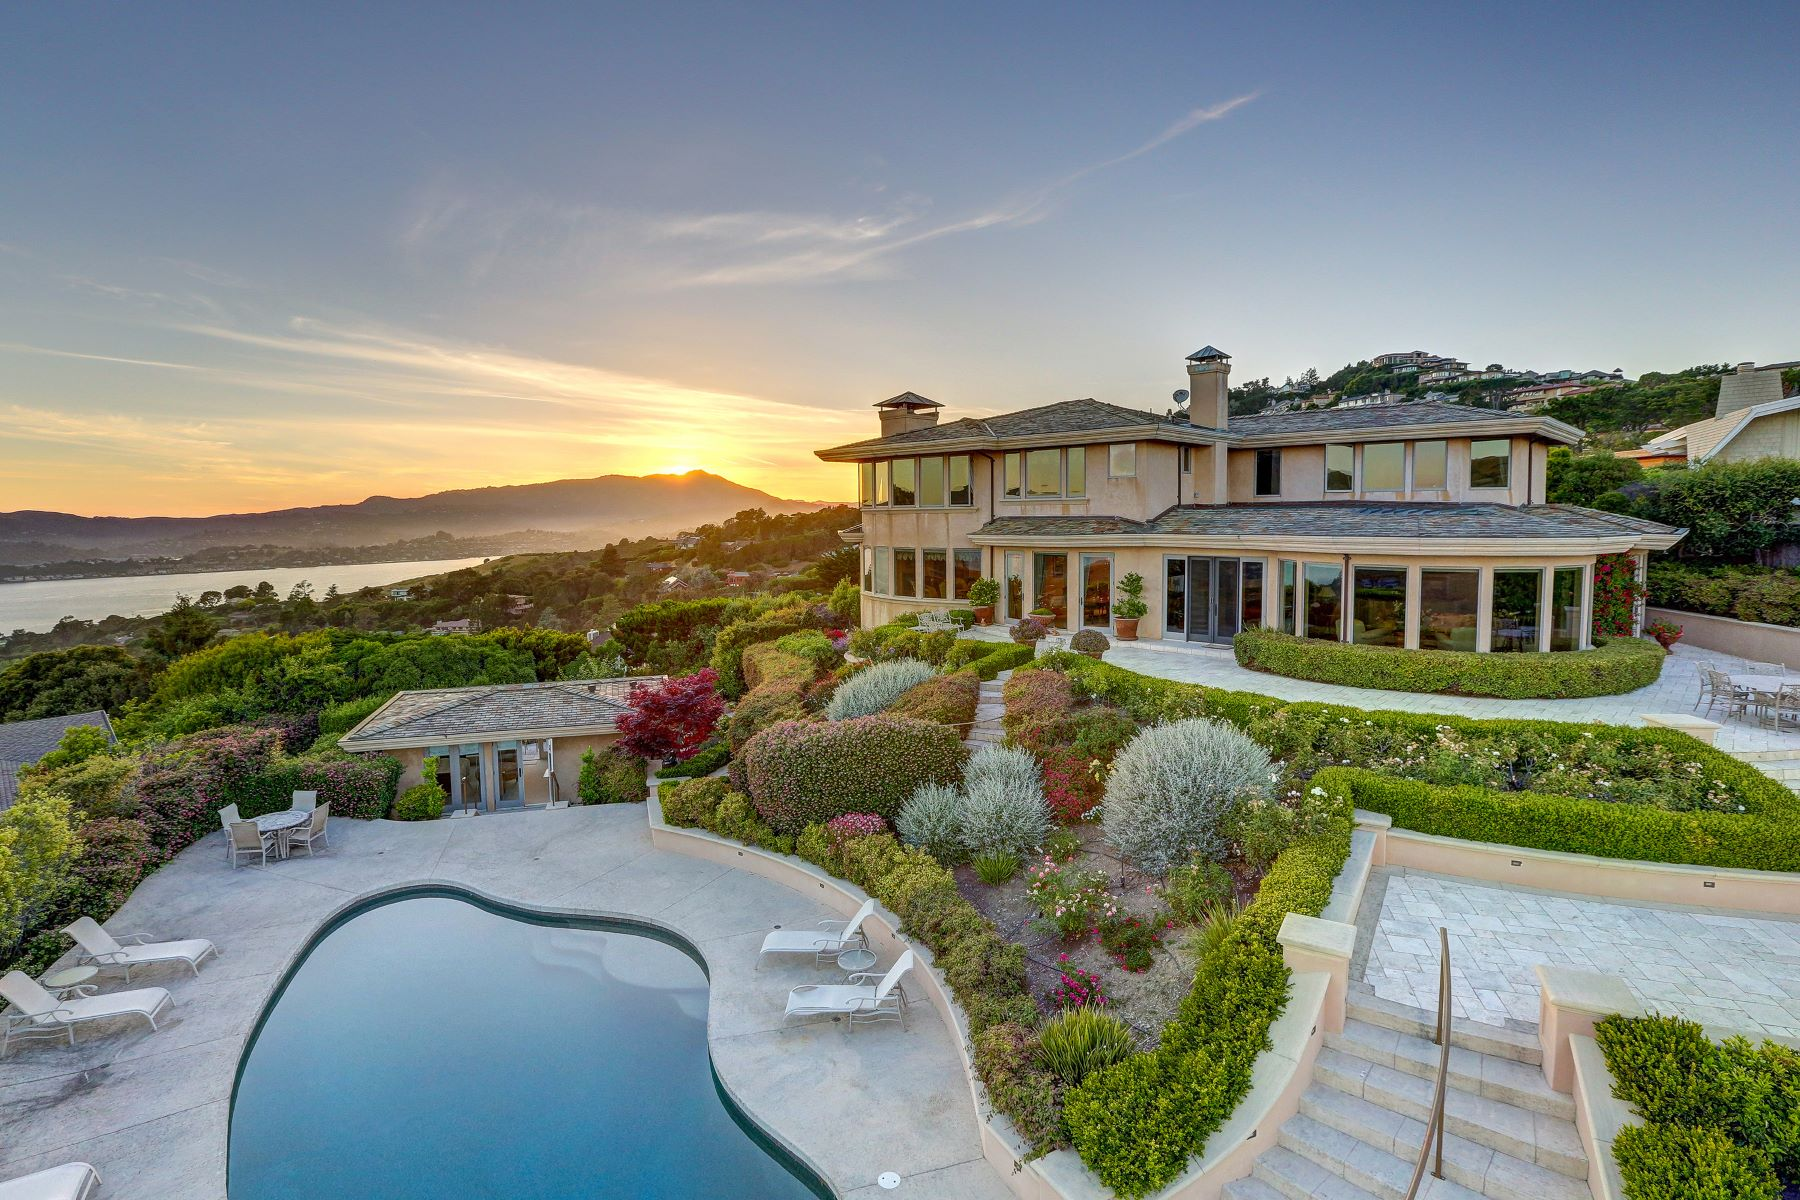 Single Family Home for Sale at World Class Estate! 4 Santa Ana Ct Tiburon, California, 94920 United States